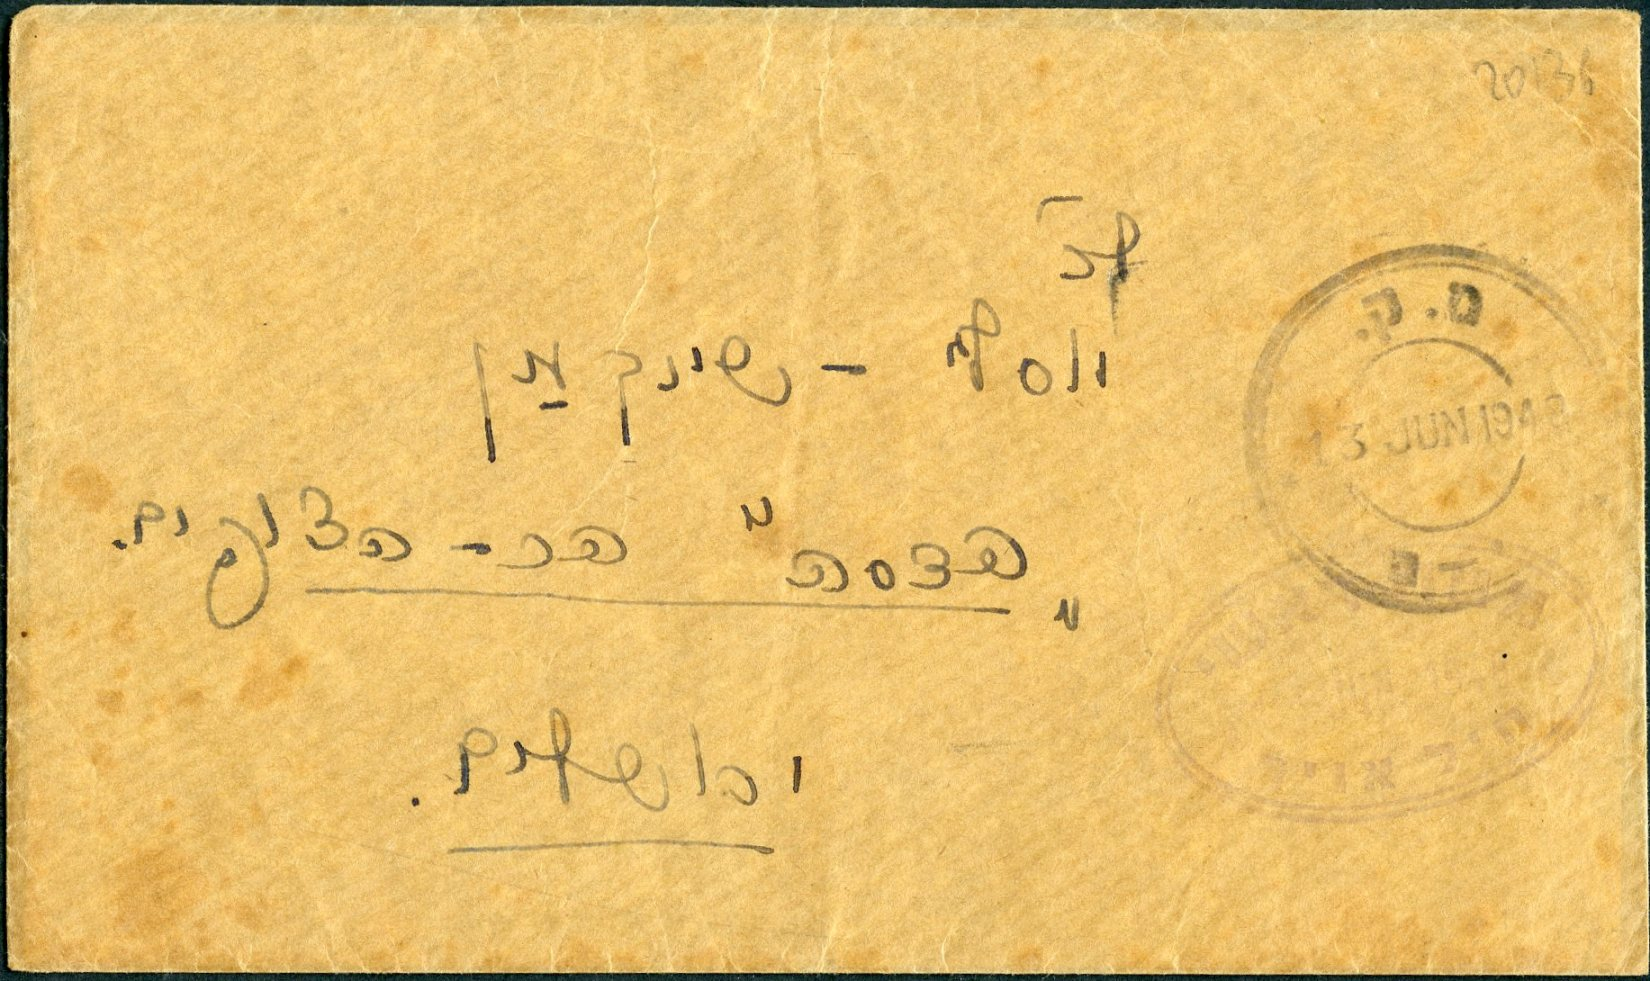 Lot 162 - 1948 JERUSALEM (incl. French Consular Post)  -  Tel Aviv Stamps Ltd. Auction #49